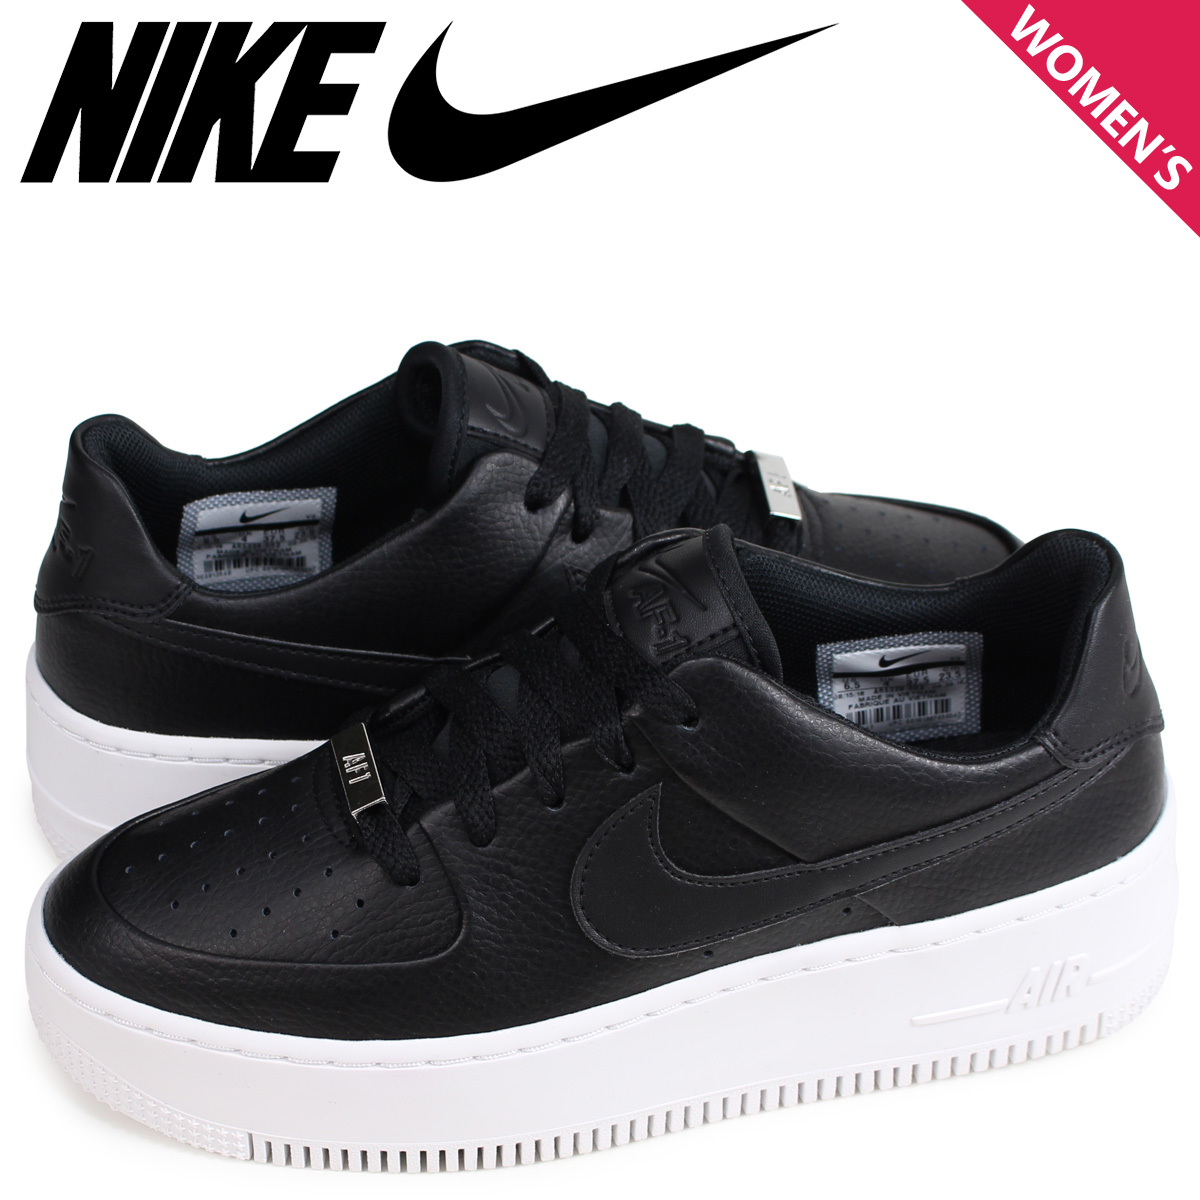 reputable site e2c8d 8beeb NIKE WMNS AIR FORCE 1 SAGE LOW AF1 Nike air force 1 sneakers Lady's black  AR5339-002